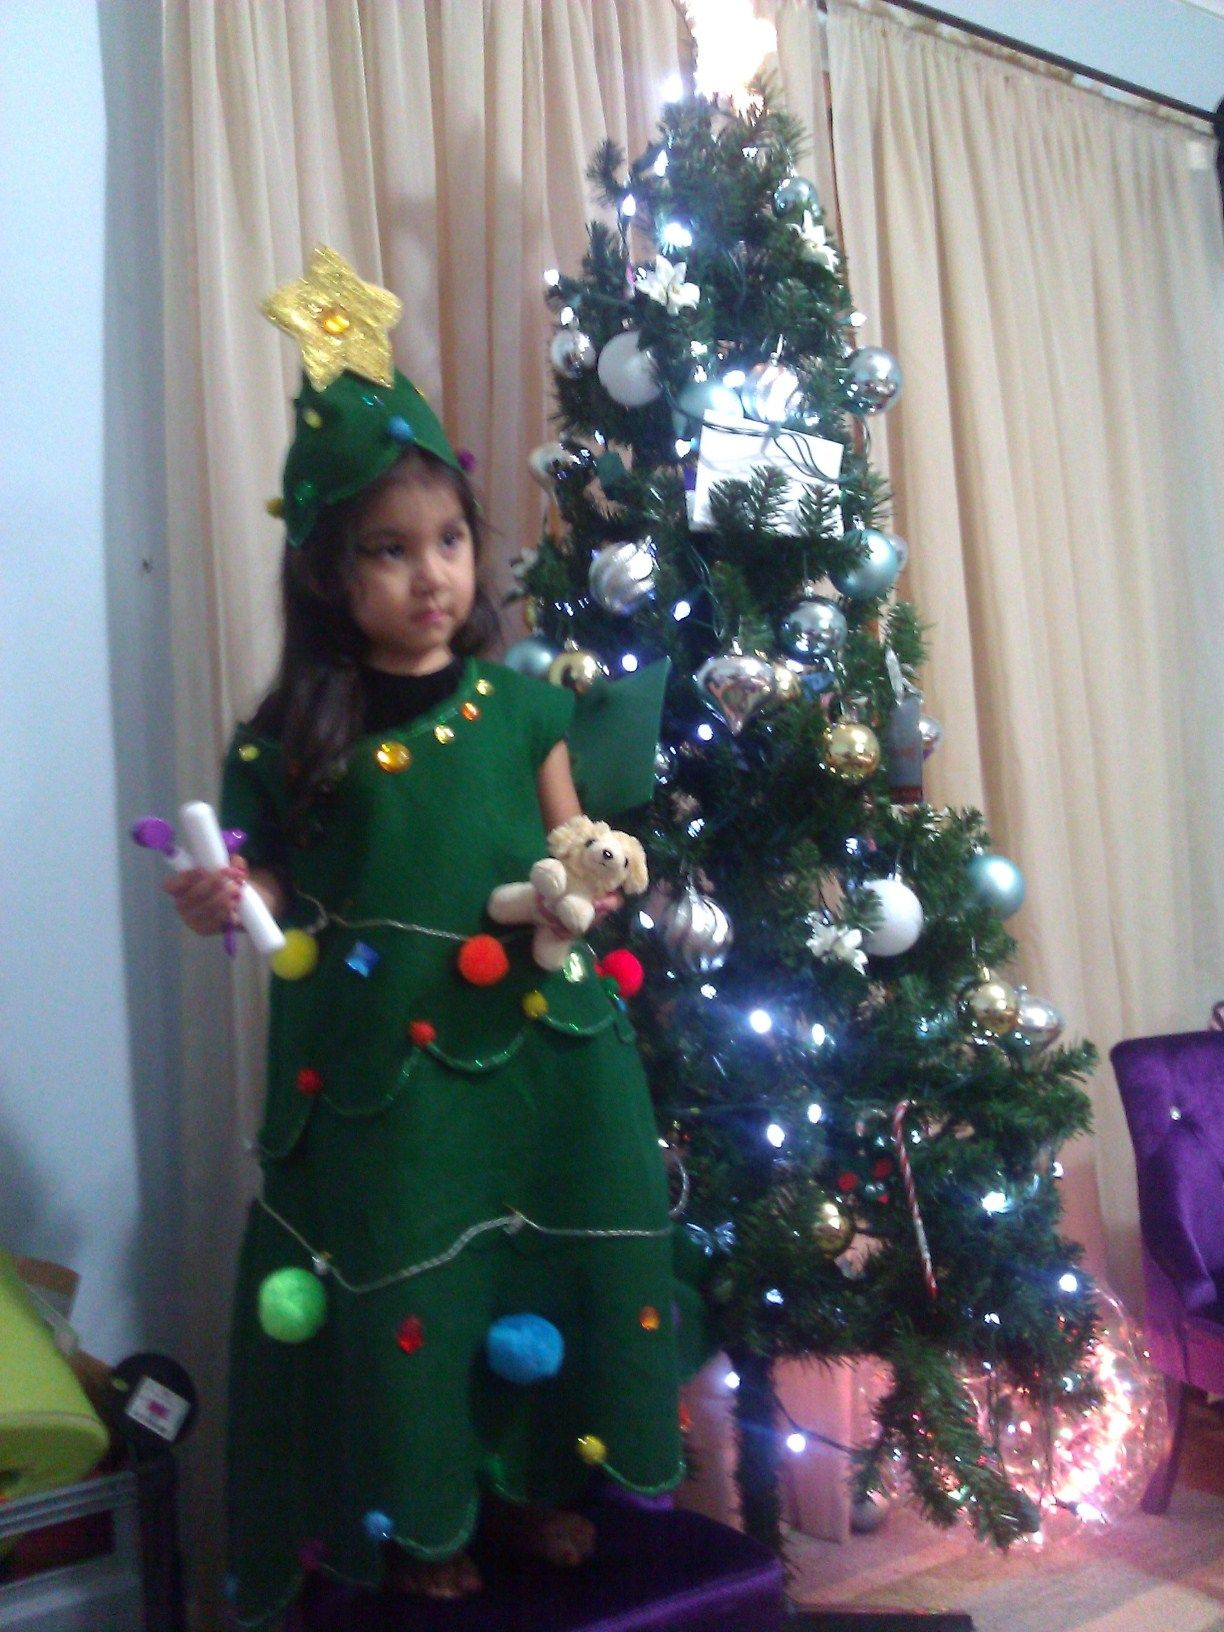 Christmas Tree Costume Made Of Felt I Decorated It With Battery Operated Led Lights Pom Pom Balls Glitter And Christmas Tree Costume Tree Costume Christmas